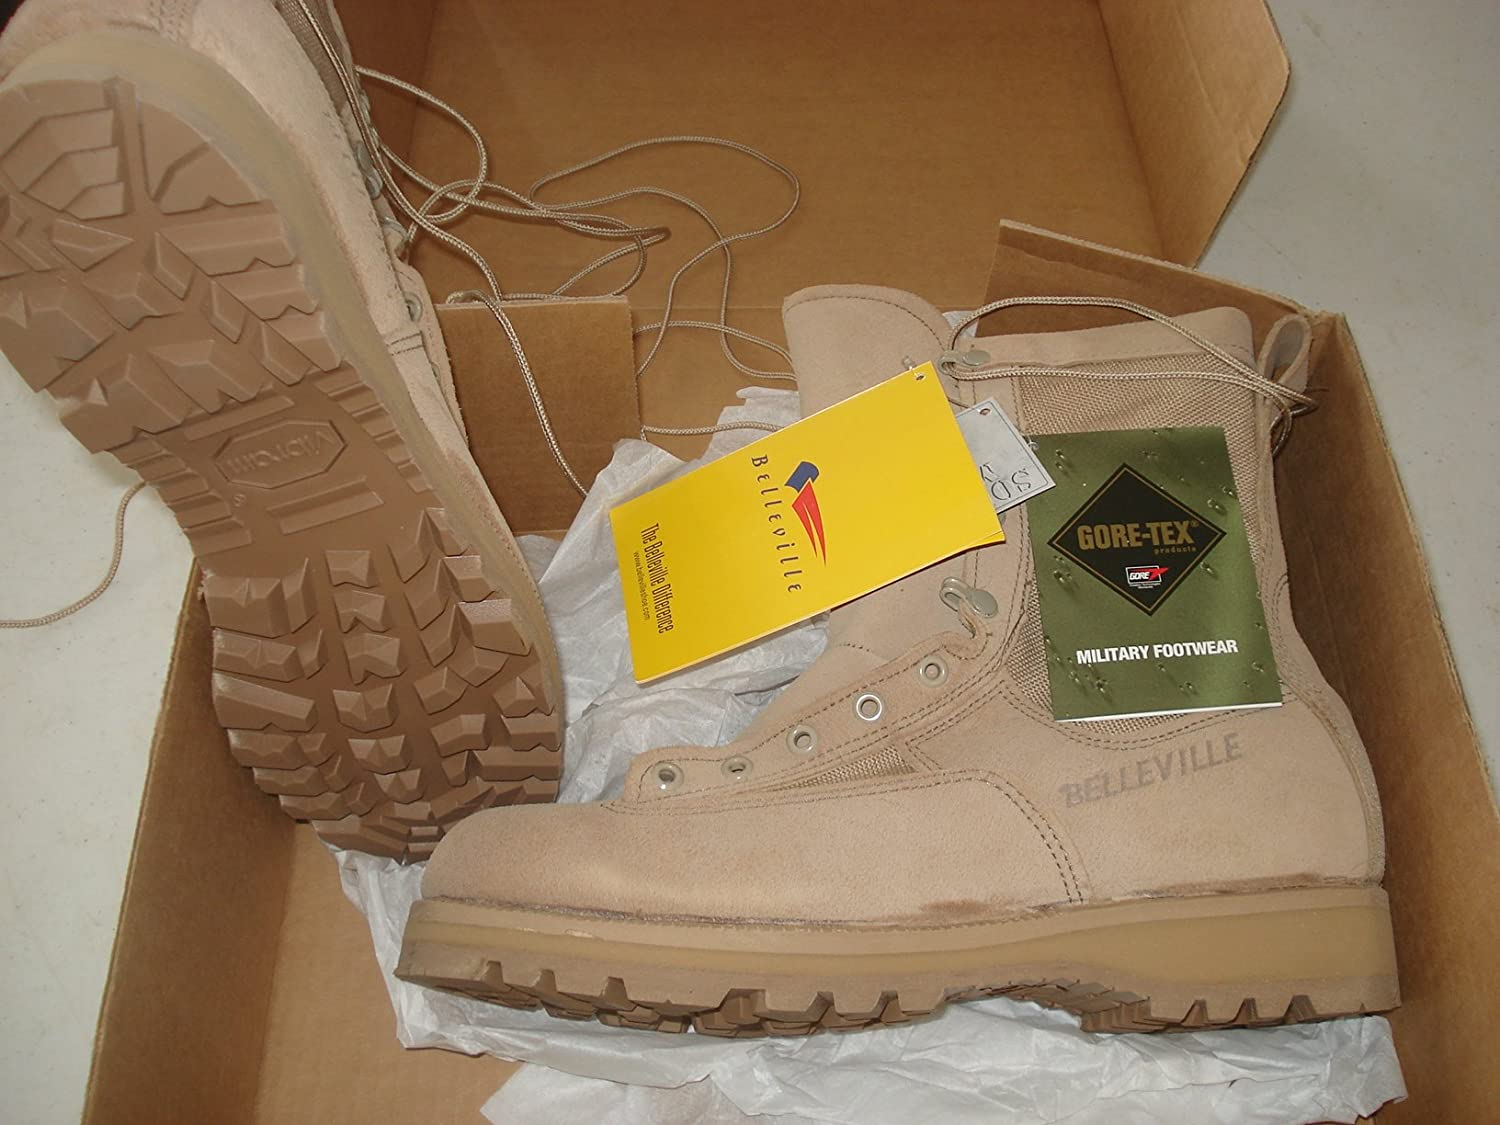 Belleville New Made in US 790 G GI Desert Tan Military Army Combat Waterproof Goretex Temperate Flight Boots 790G